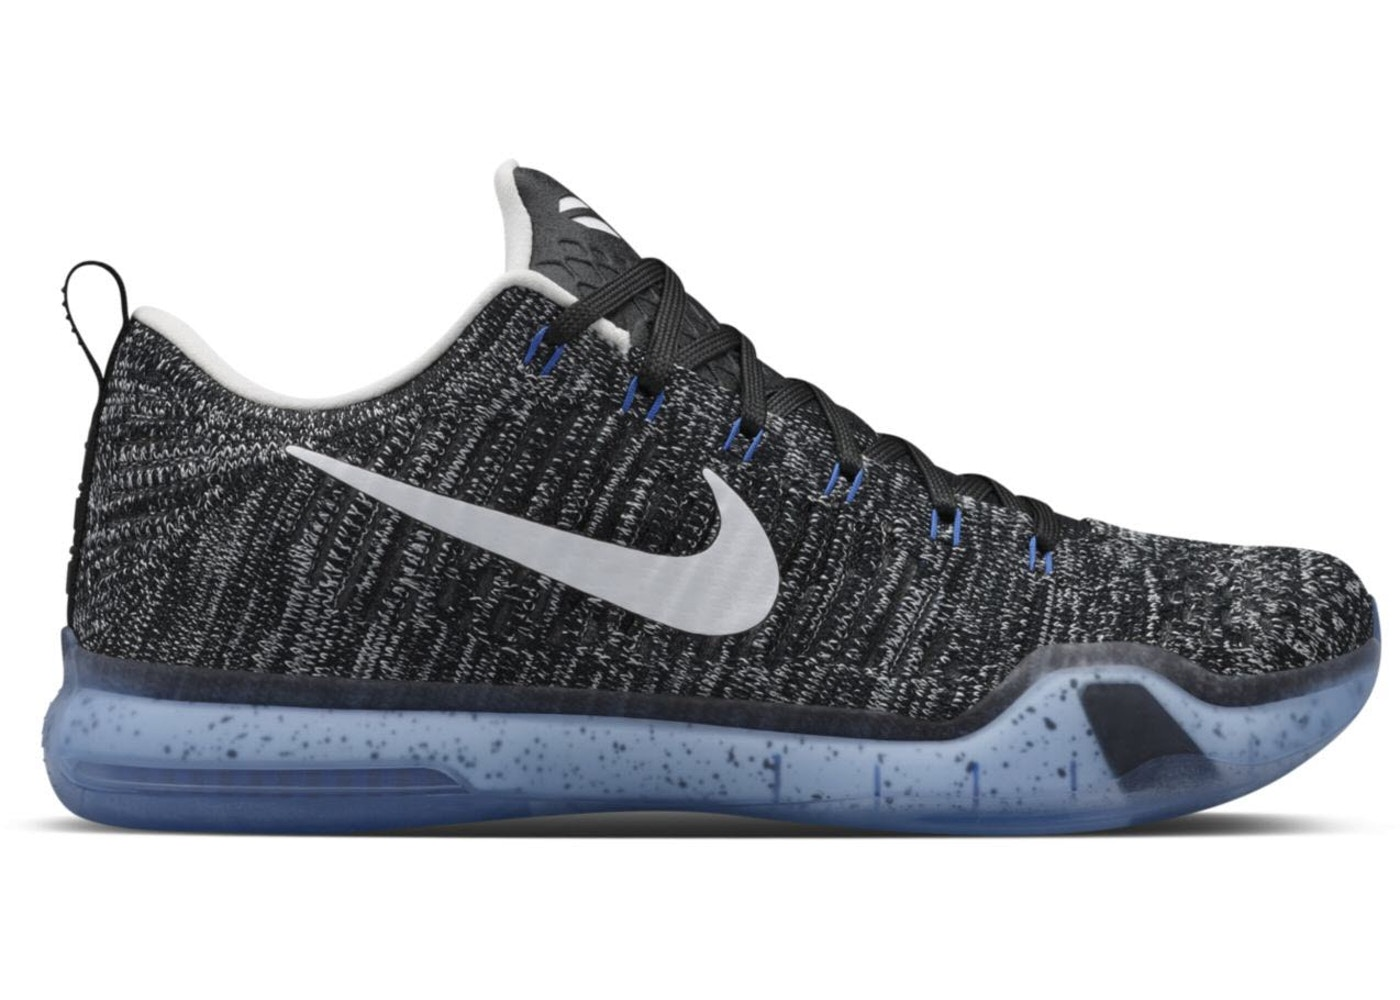 the latest d962c 611ab Kobe 10 Elite HTM Oreo - 805937-010